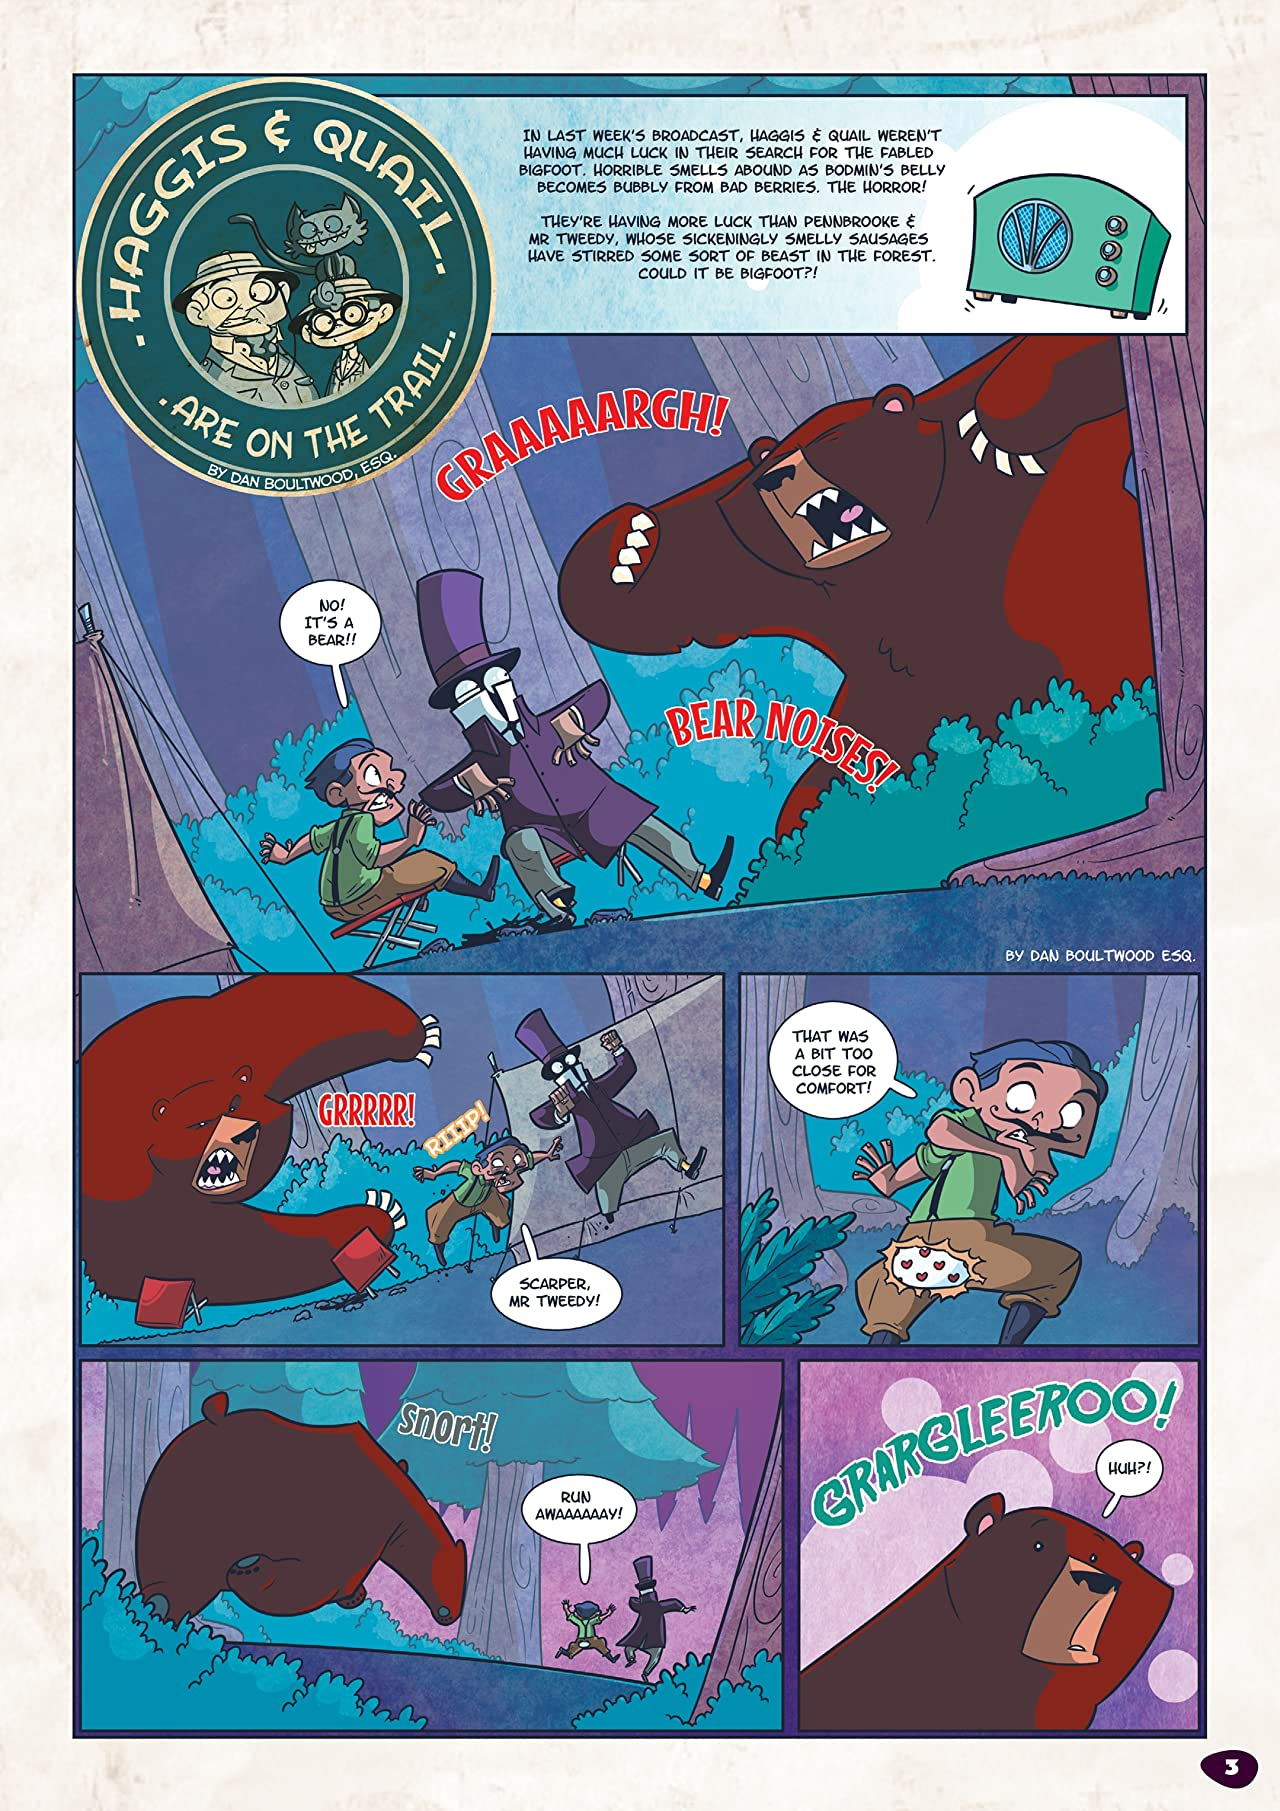 The Phoenix #107: The Weekly Story Comic